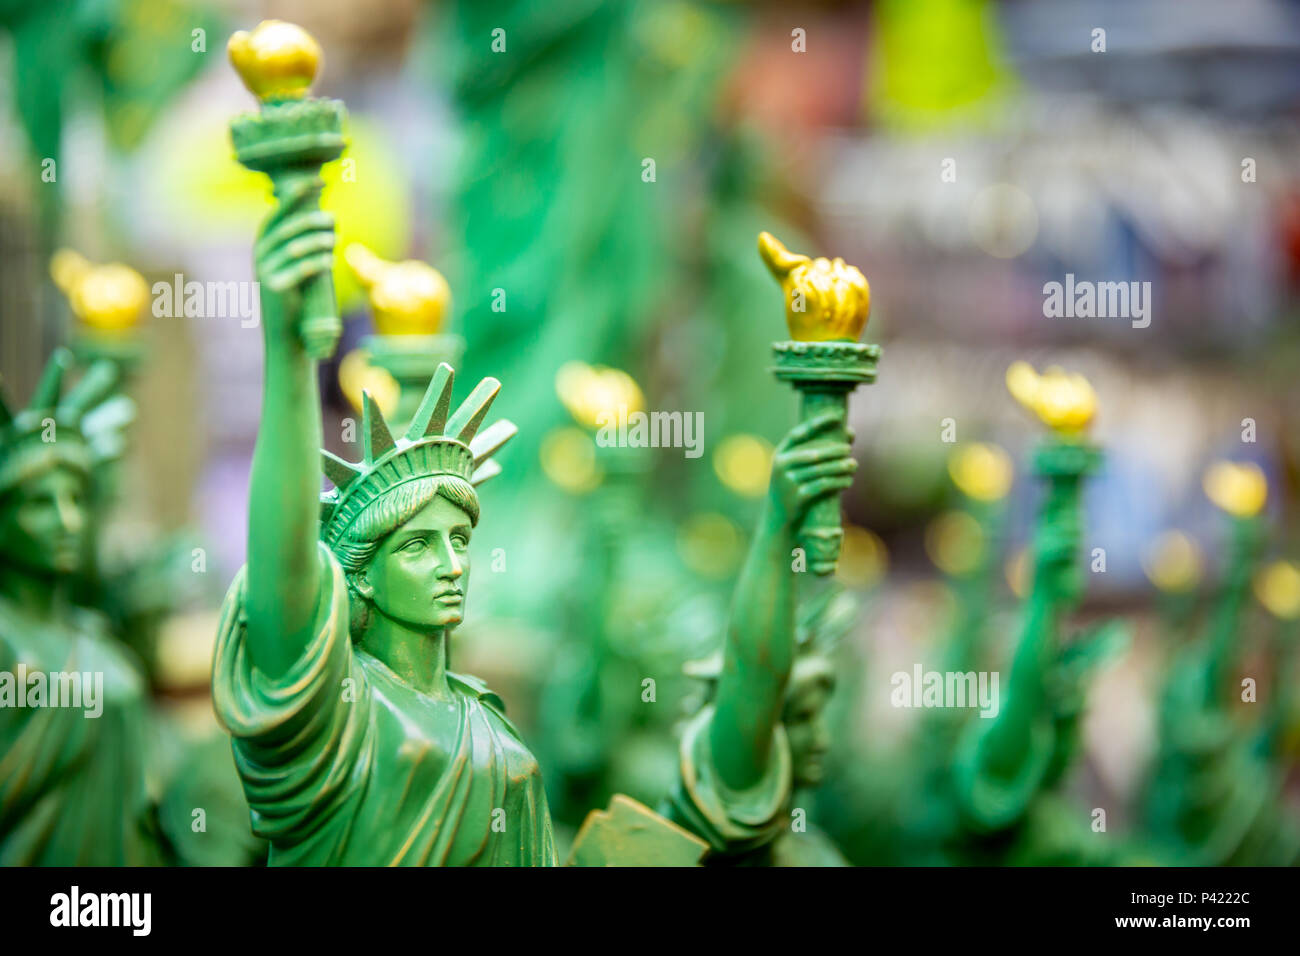 Row with generic Statue of Liberty statues (selective focus) sold as souvenirs in a NYC shop. - Stock Image